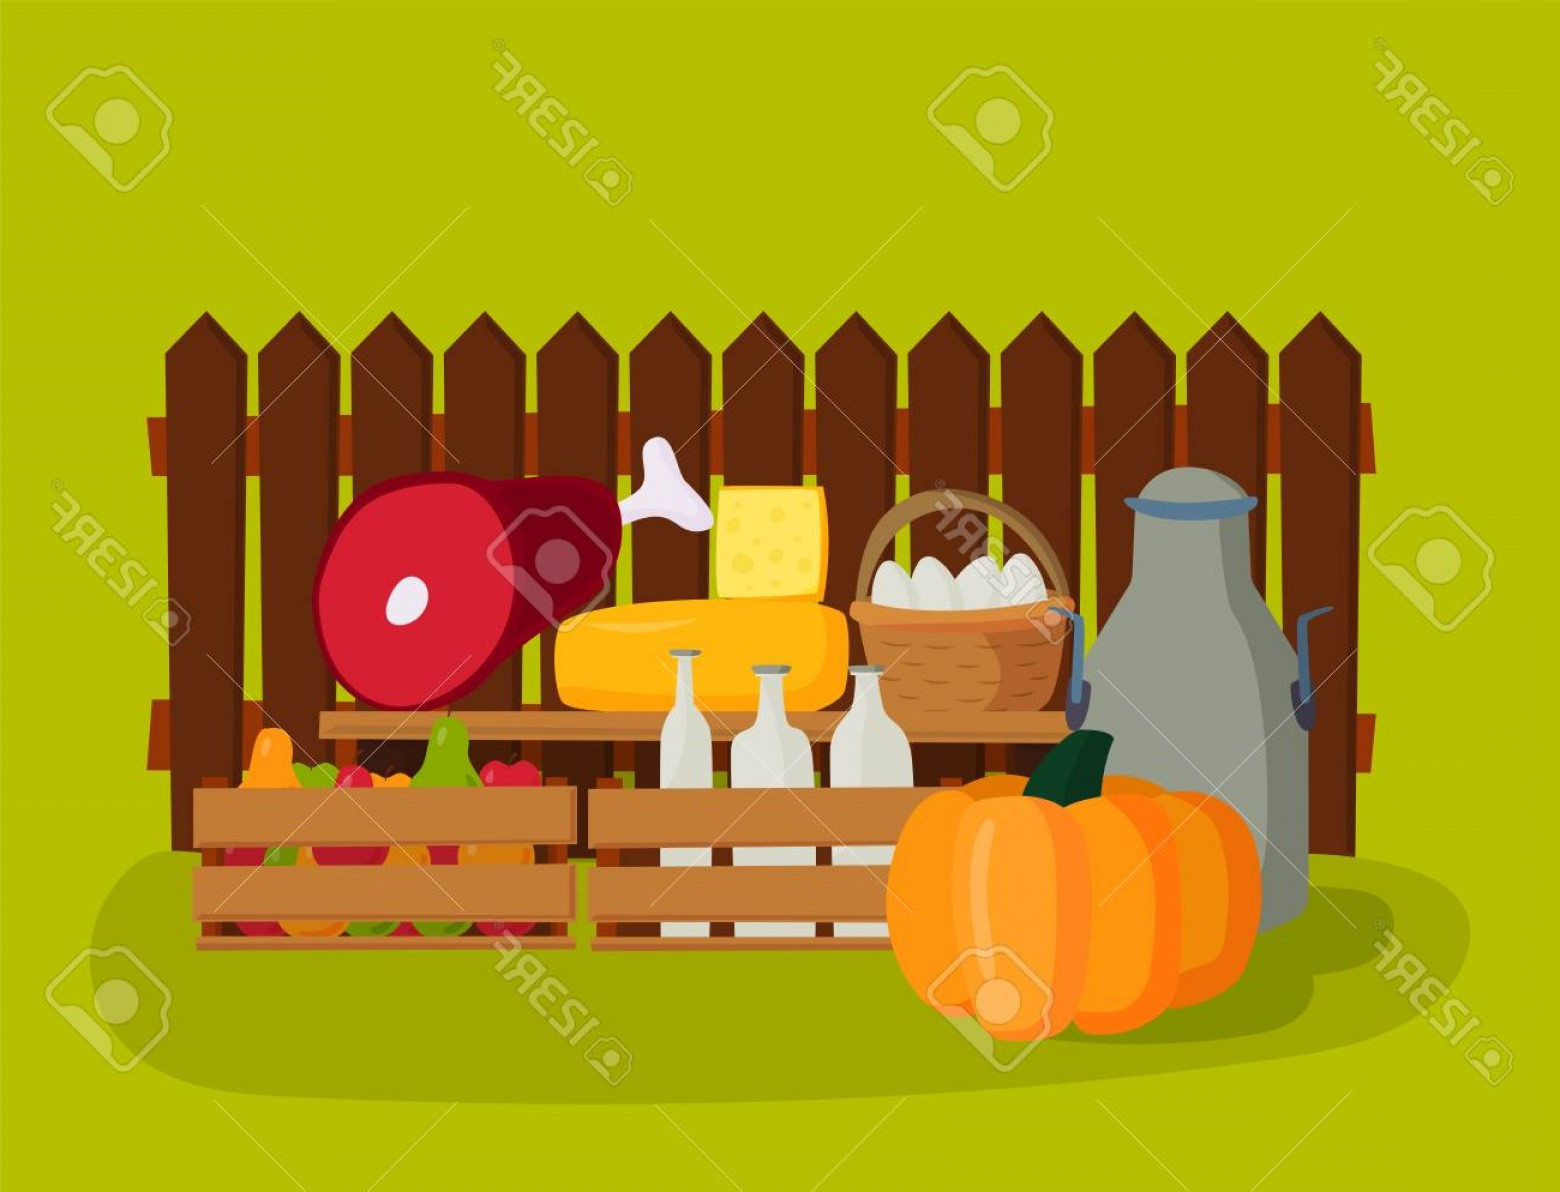 Farm Vector Illustration: Photostock Vector Farm Vector Illustration Nature Food Harvesting Grain Agriculture Growth Cultivated Design